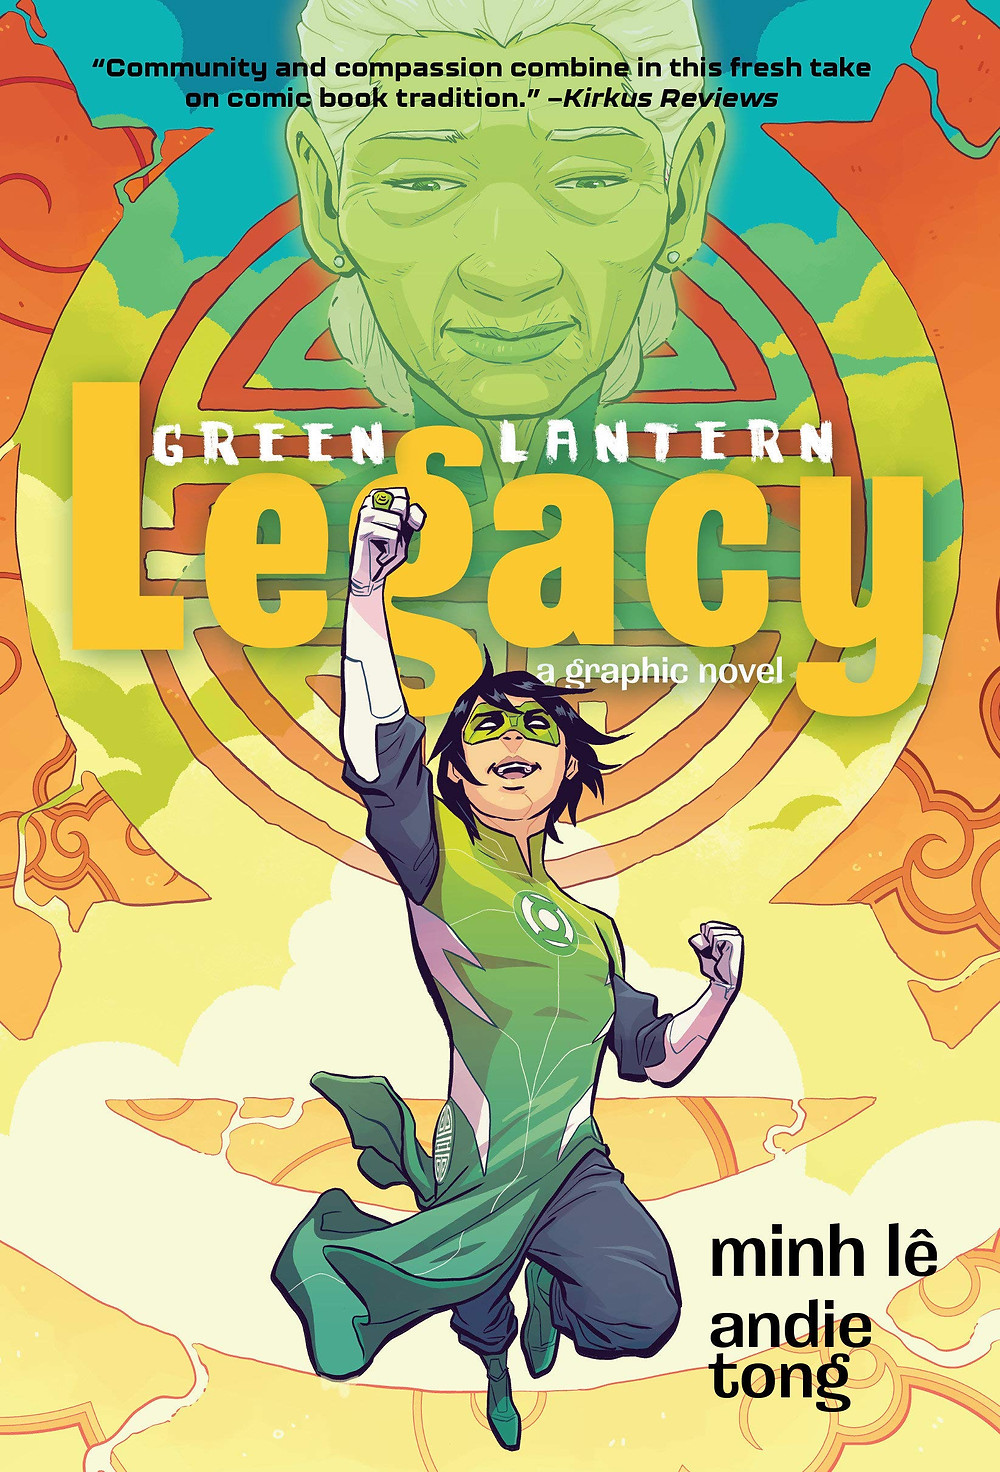 A twelve-year old boy leaps in the air with his hand above his head. He wears a Green Lantern super hero costume. A elderly woman's face hovers in the air above him. The Green Lantern symbol hovers behind them.